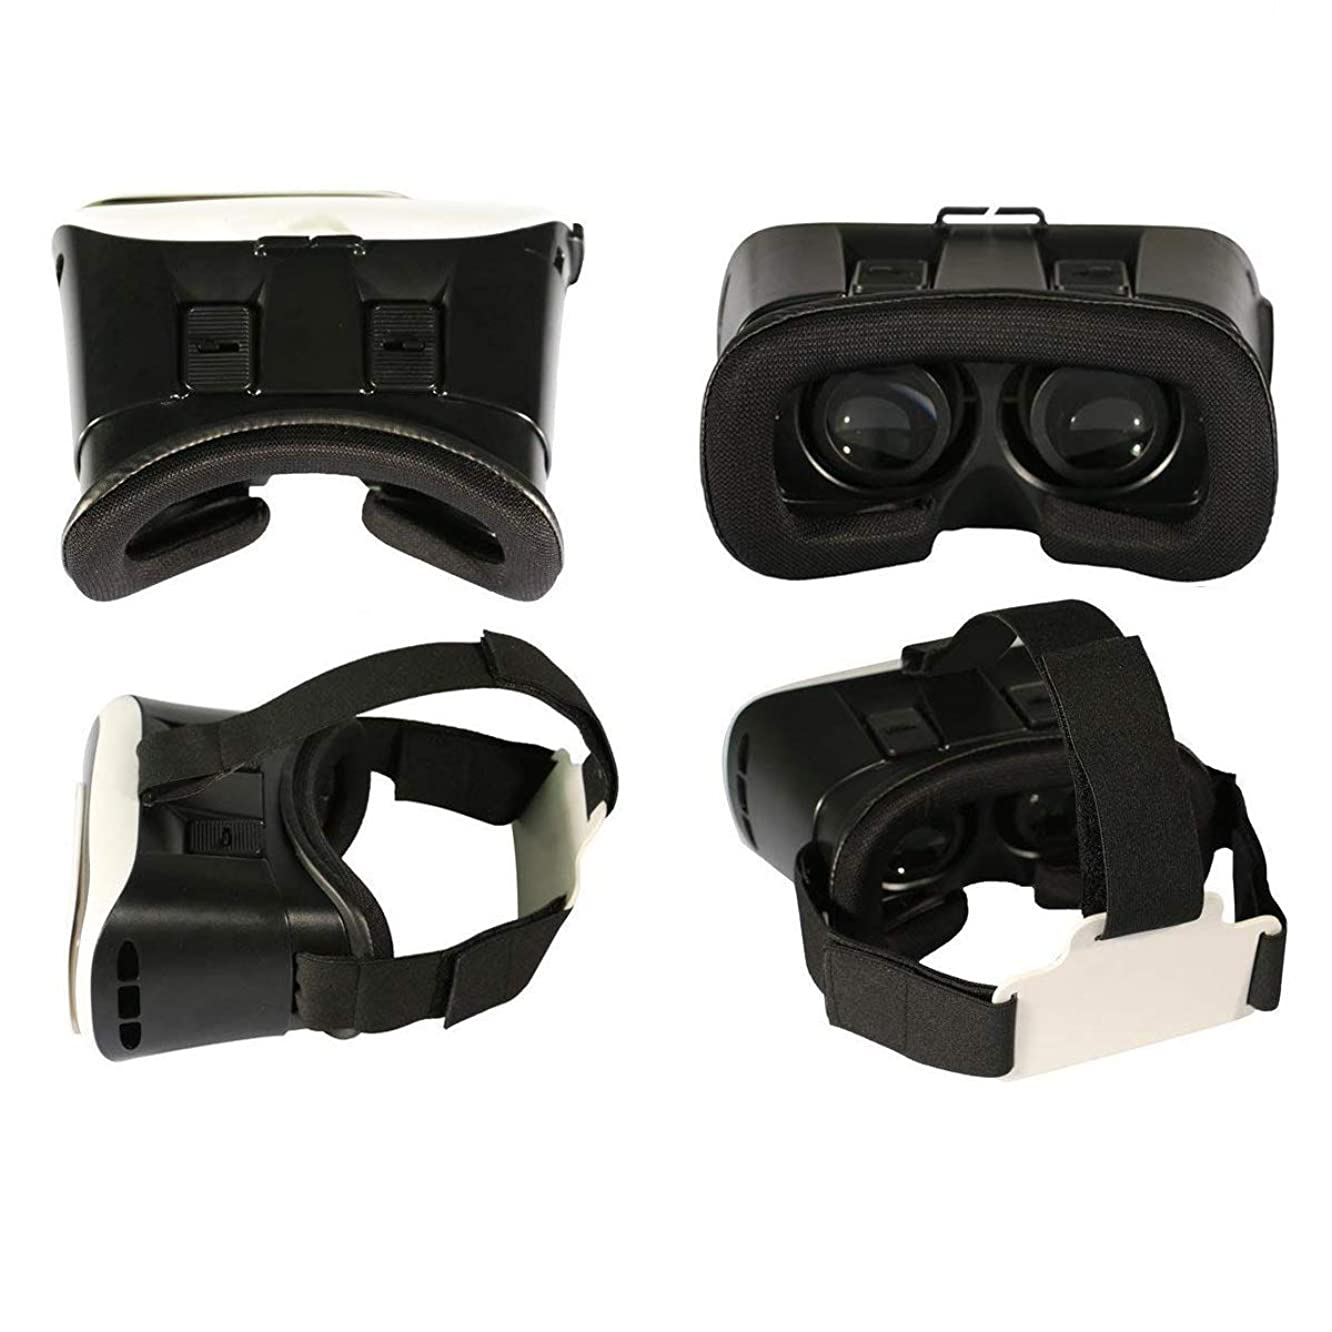 2nd Generation 3D Virtual Reality Glasses Headset Video Movie Game VR Box Glasses with Adjustable Straps/Earphone Holes/Spherical Resin Lens for 3.5~6 inch iOS Android Smartphones